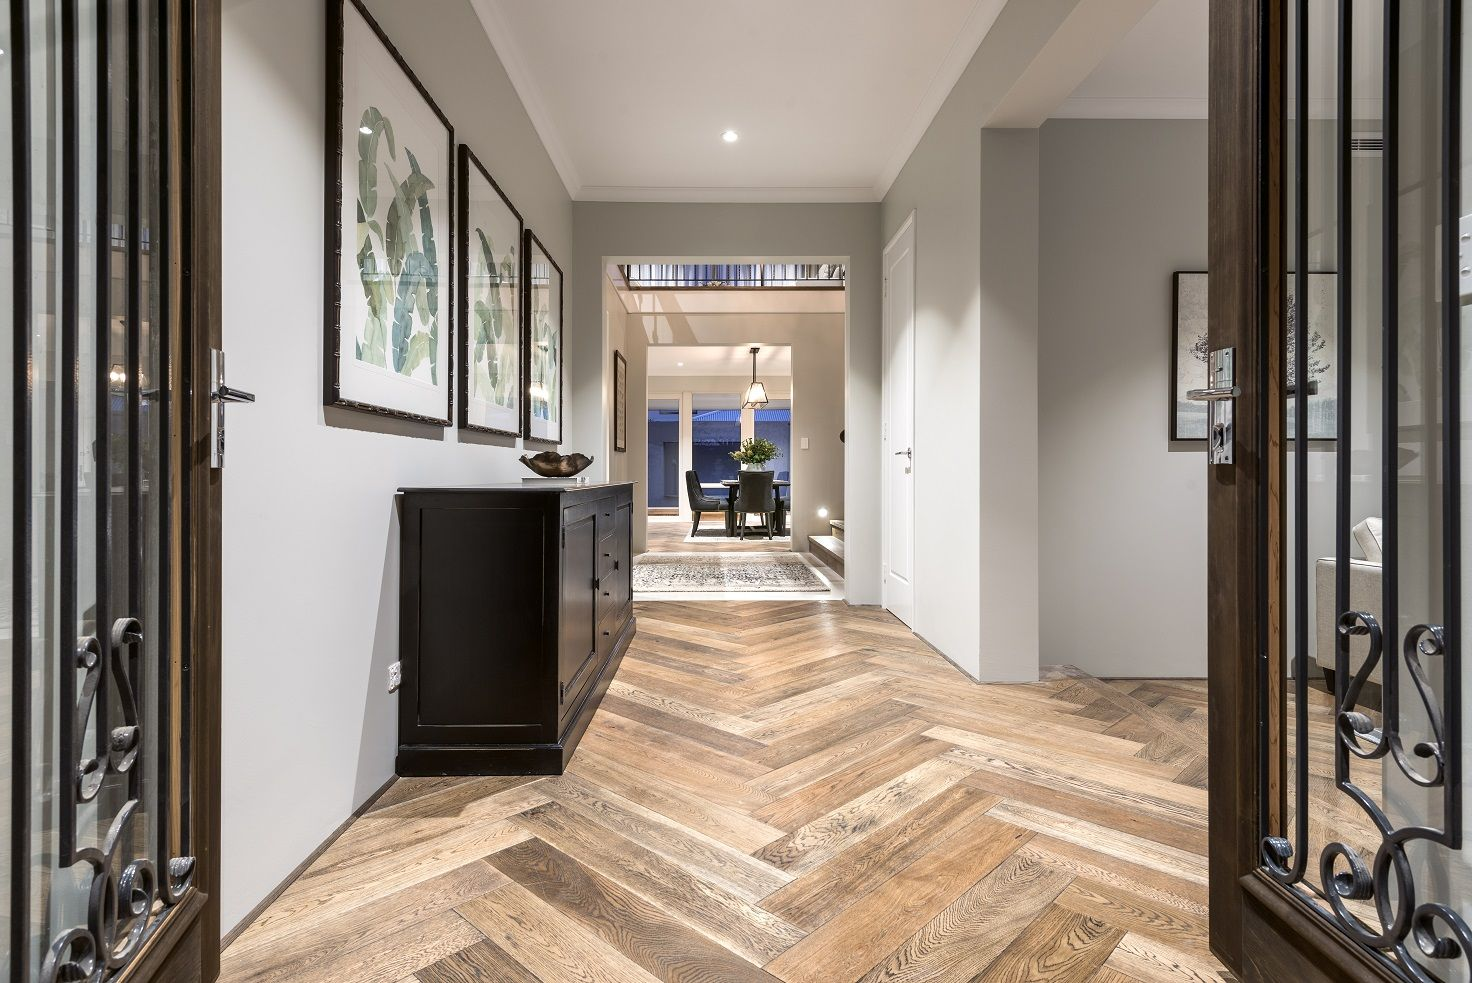 Webb And Brown Neaves Toorak: Entry To The Toorak Display Home By Webb & Brown-Neaves